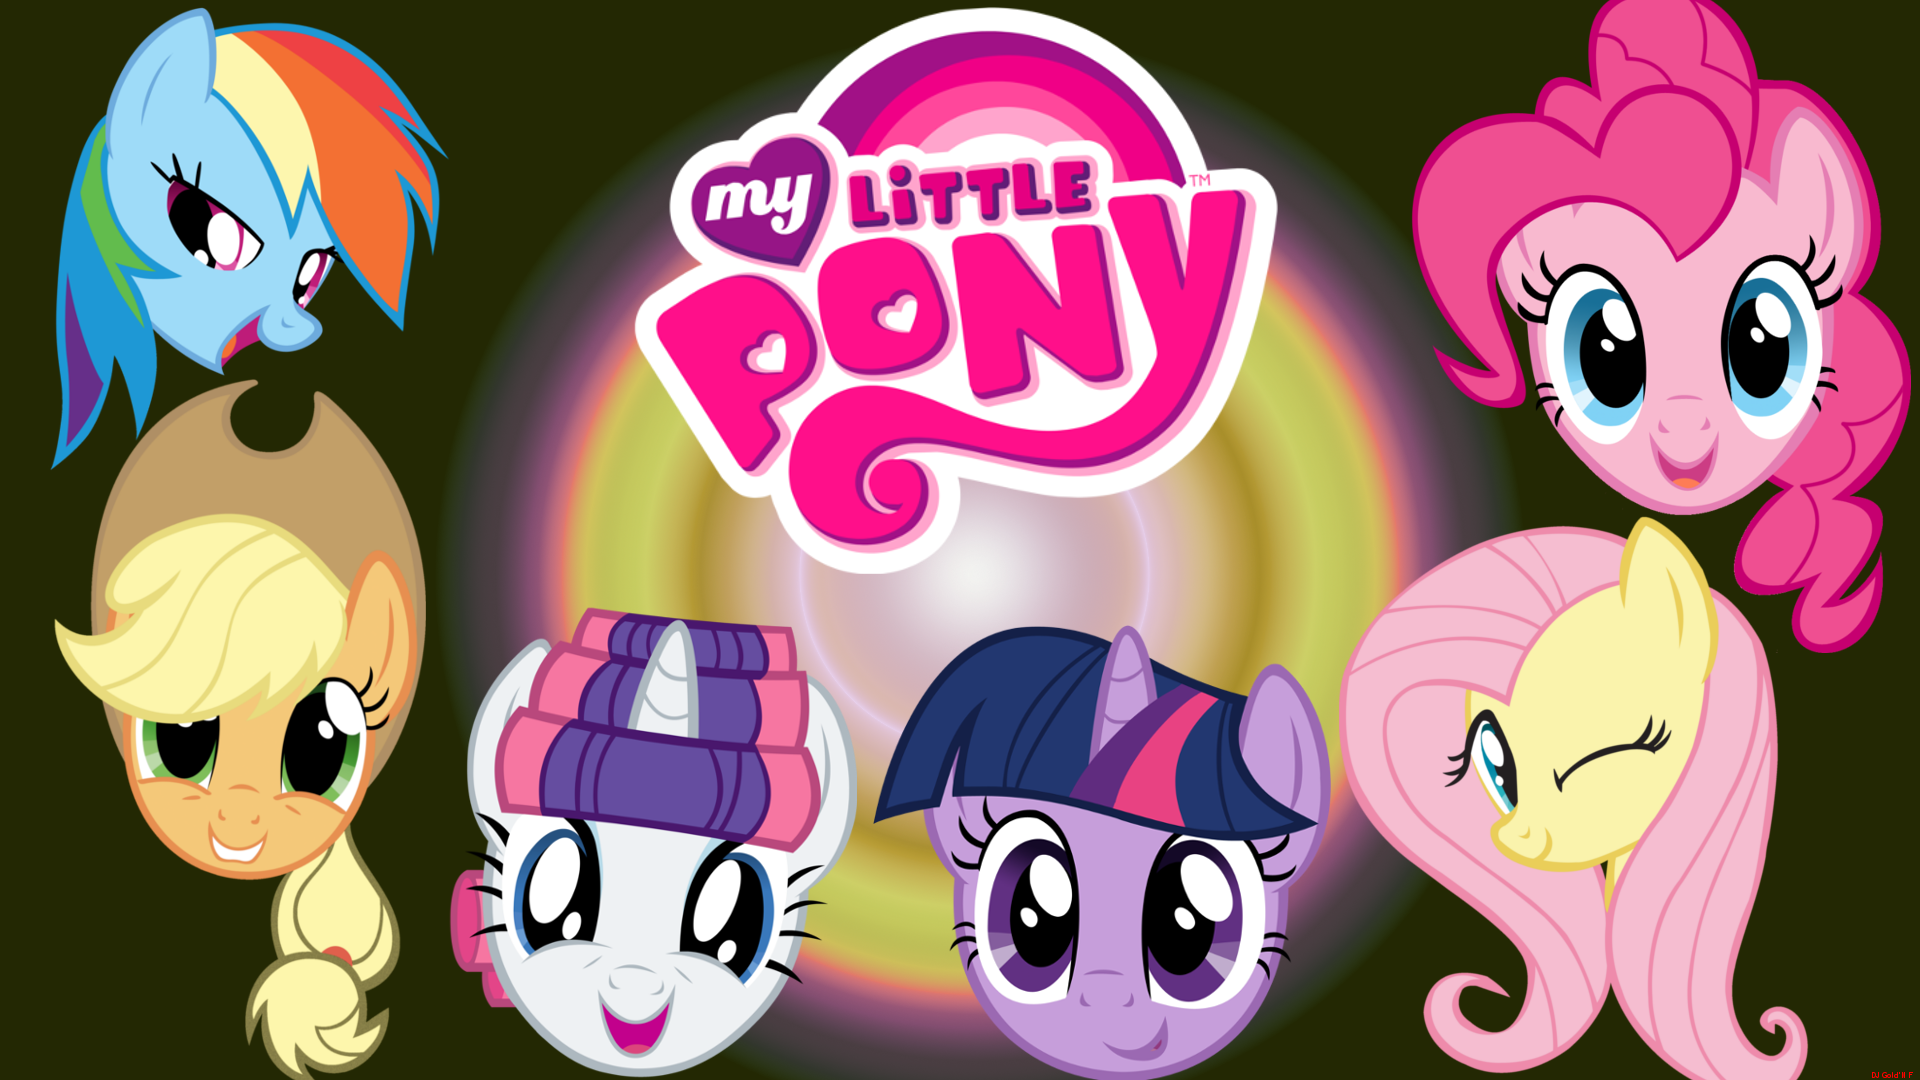 My Little Pony Wallpaper By Djgoldnf On Deviantart